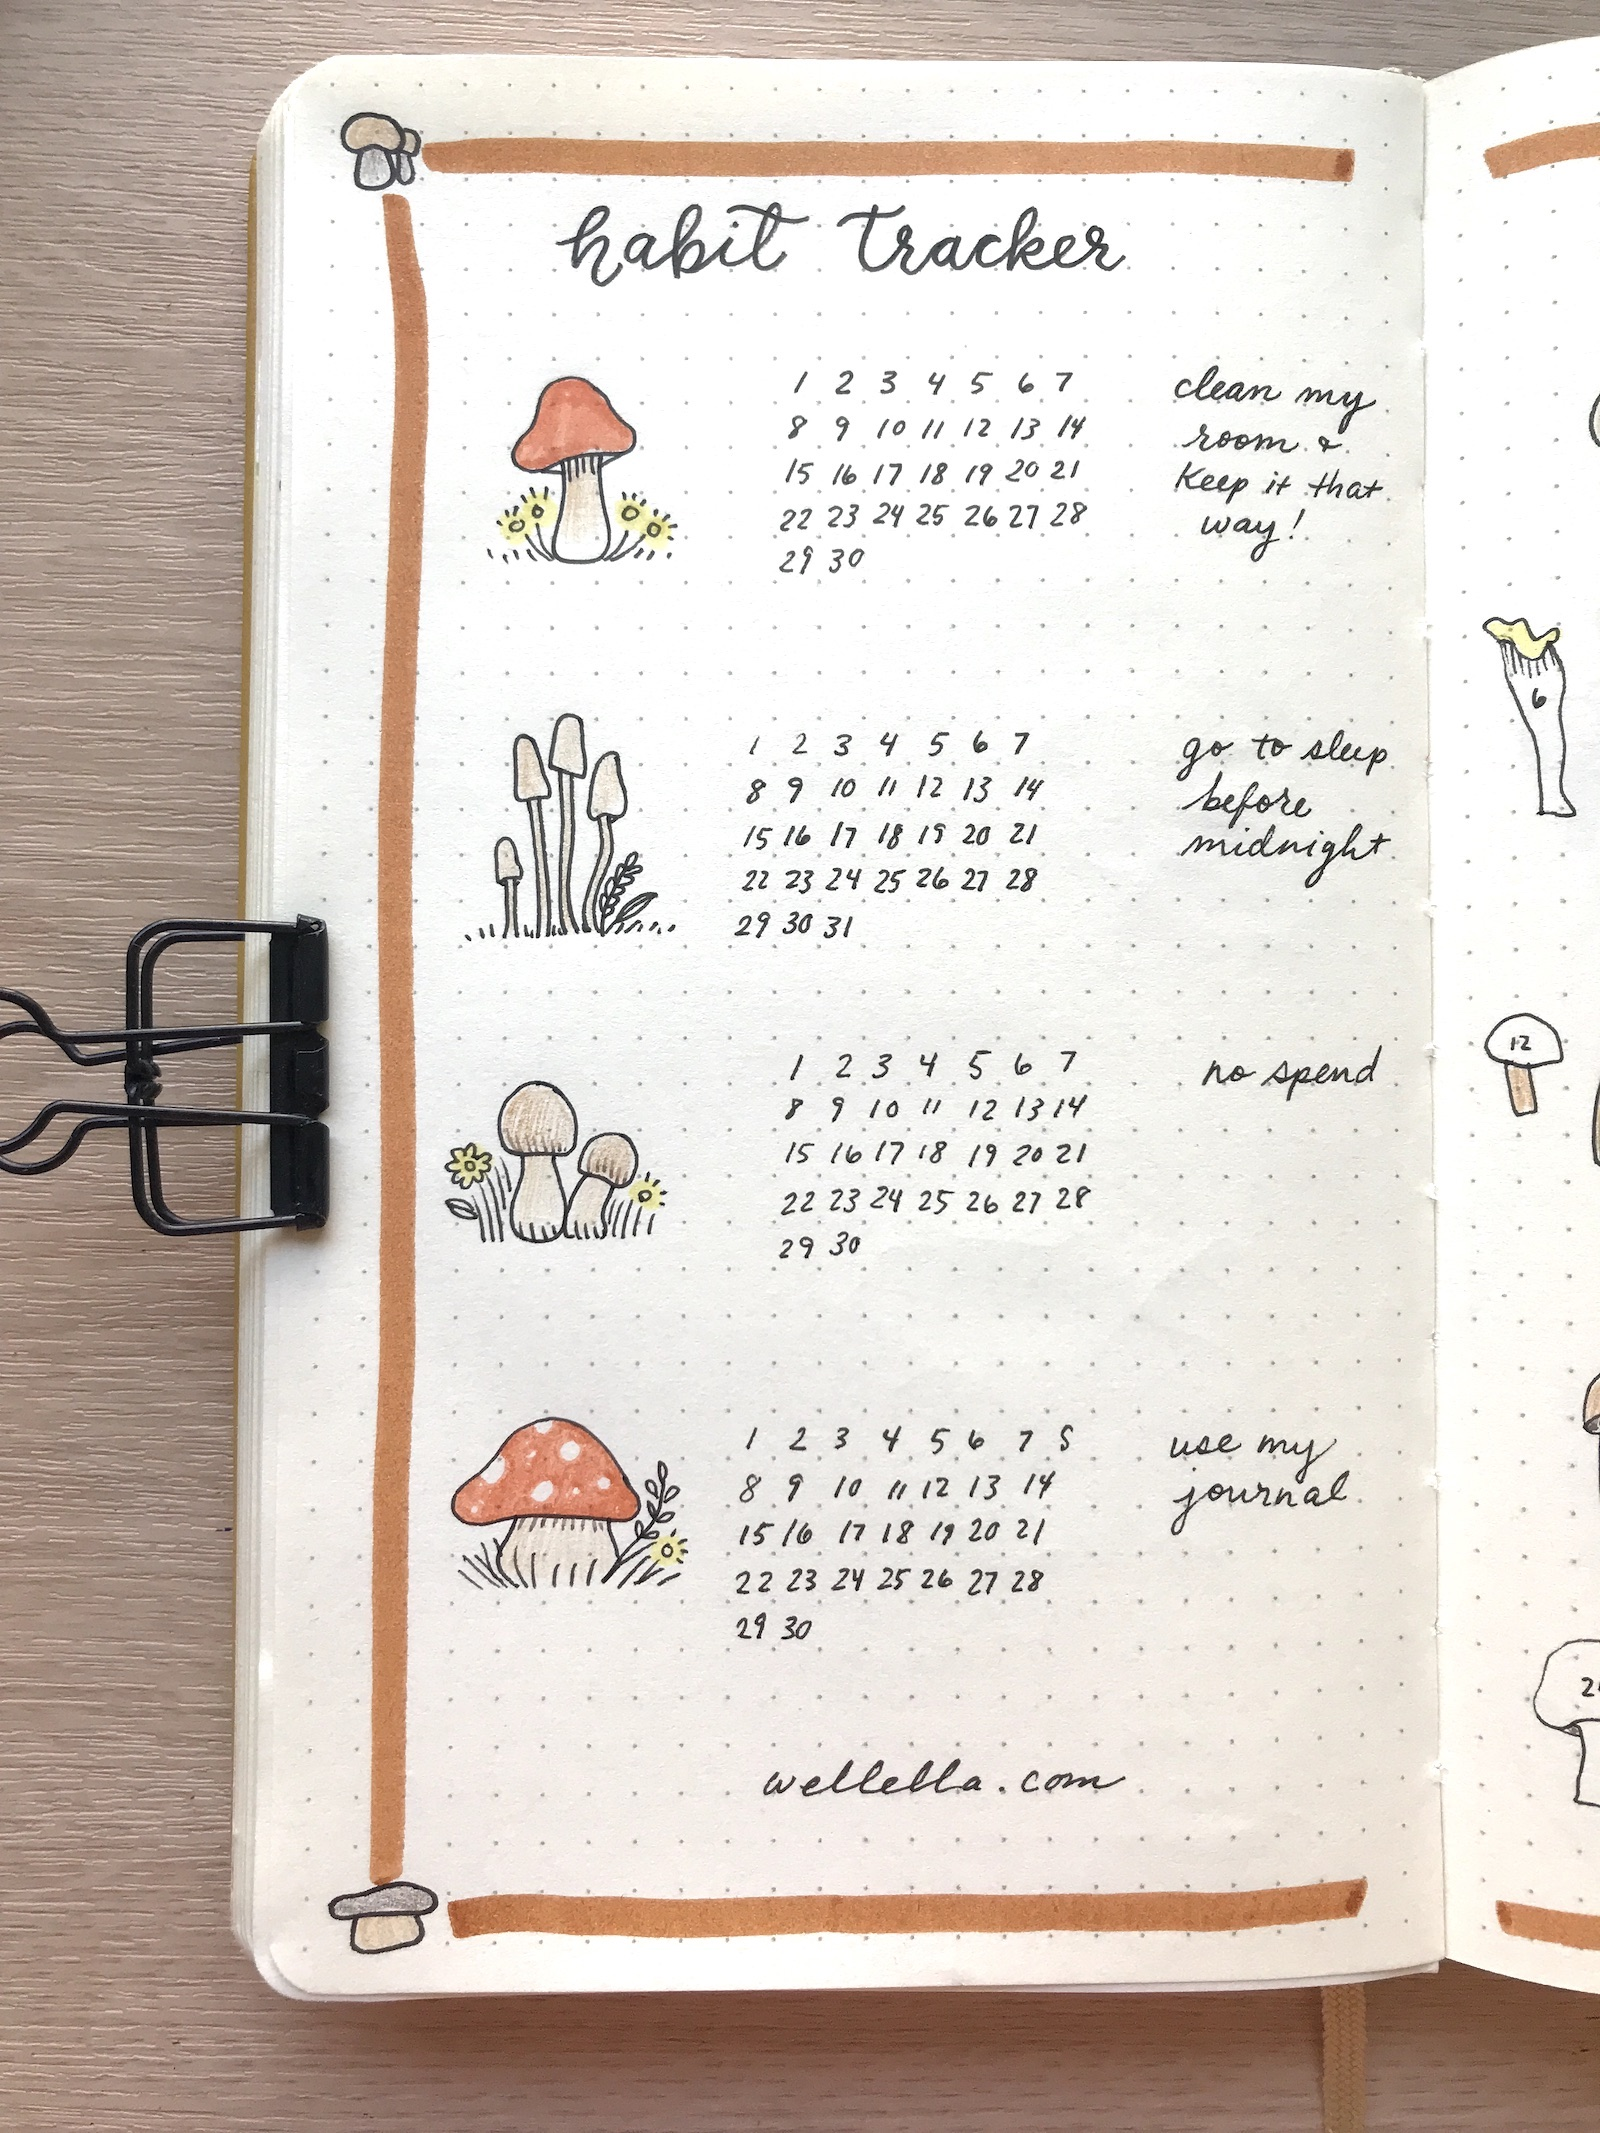 A habit tracker page in a dot grid notebook with hand-drawn mushroom doodles.